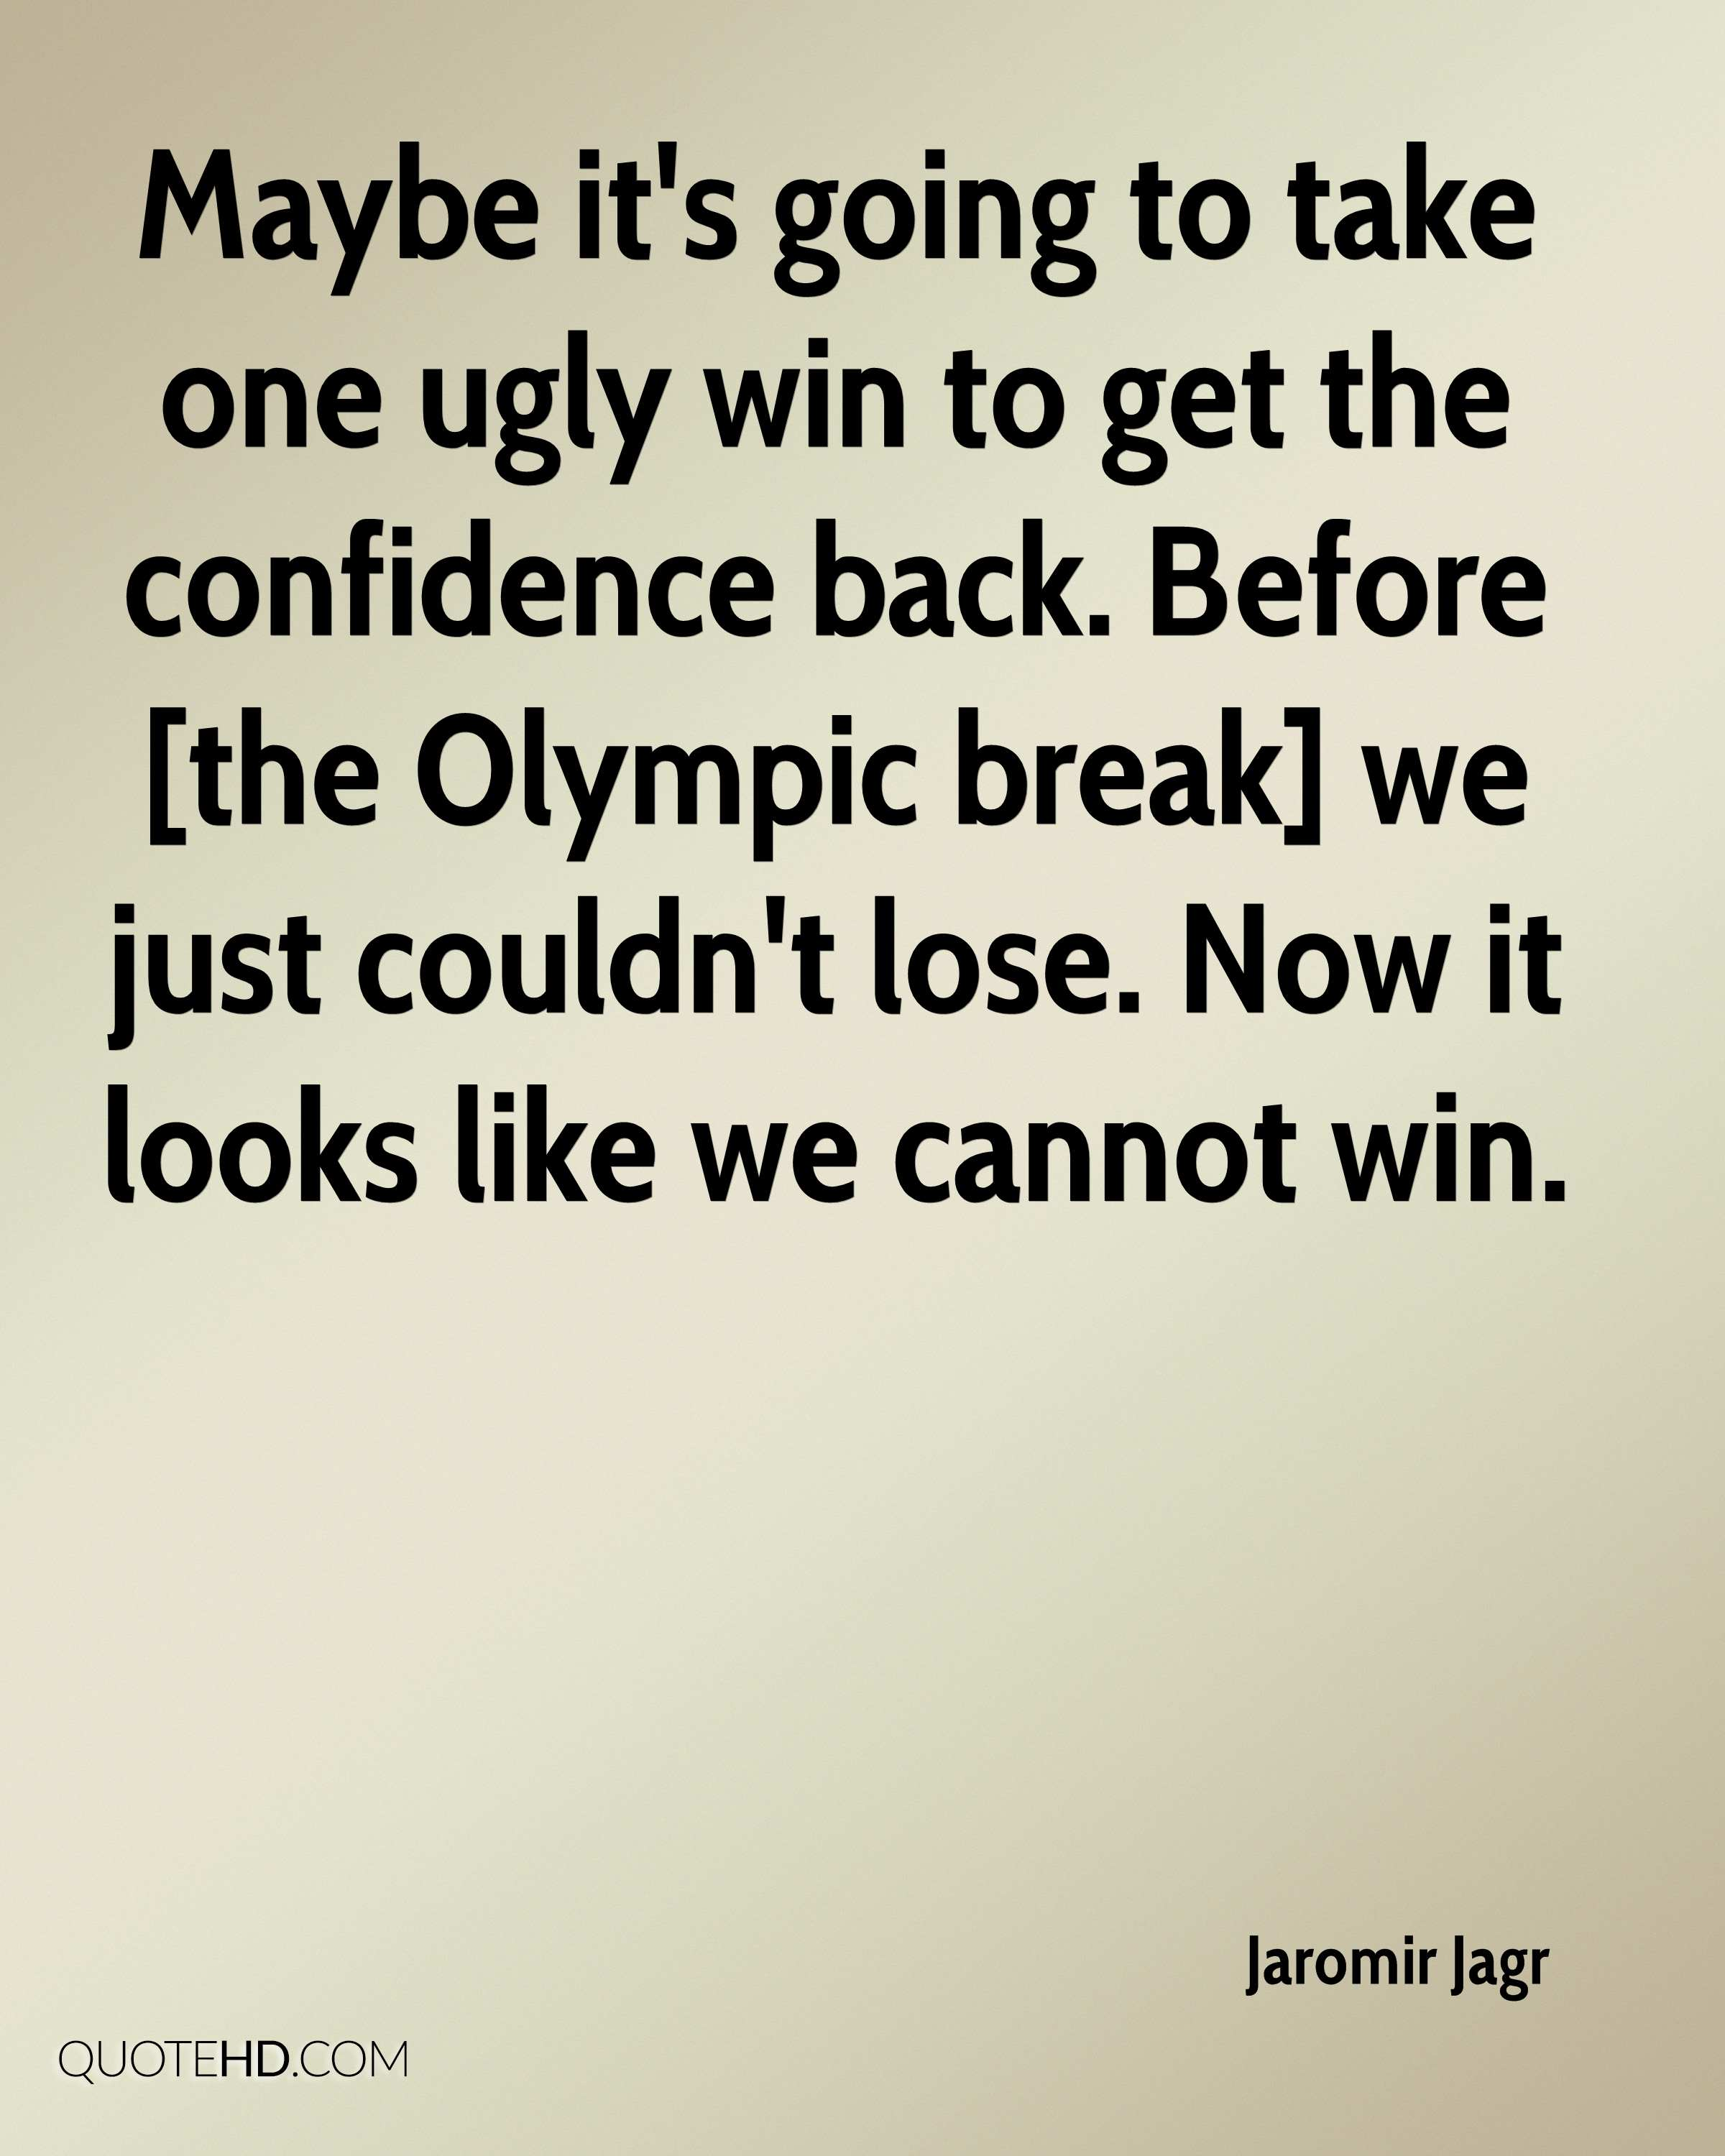 Maybe it's going to take one ugly win to get the confidence back. Before [the Olympic break] we just couldn't lose. Now it looks like we cannot win.